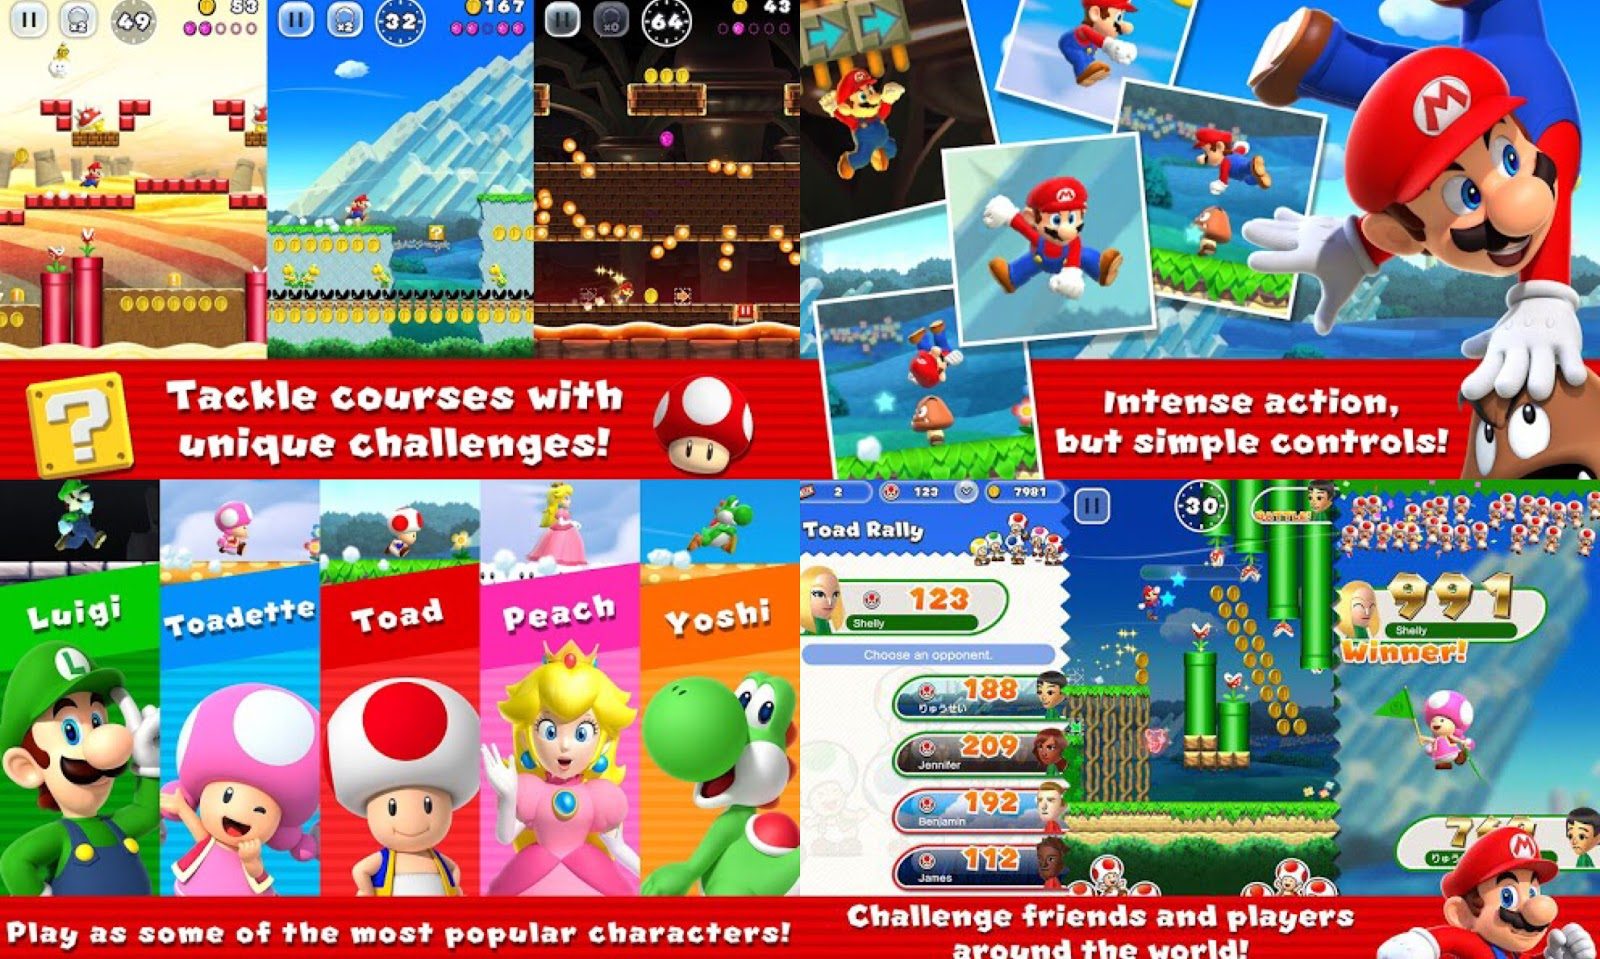 78+ Super Mary S World Apk - Super Marys World For Android, Mario